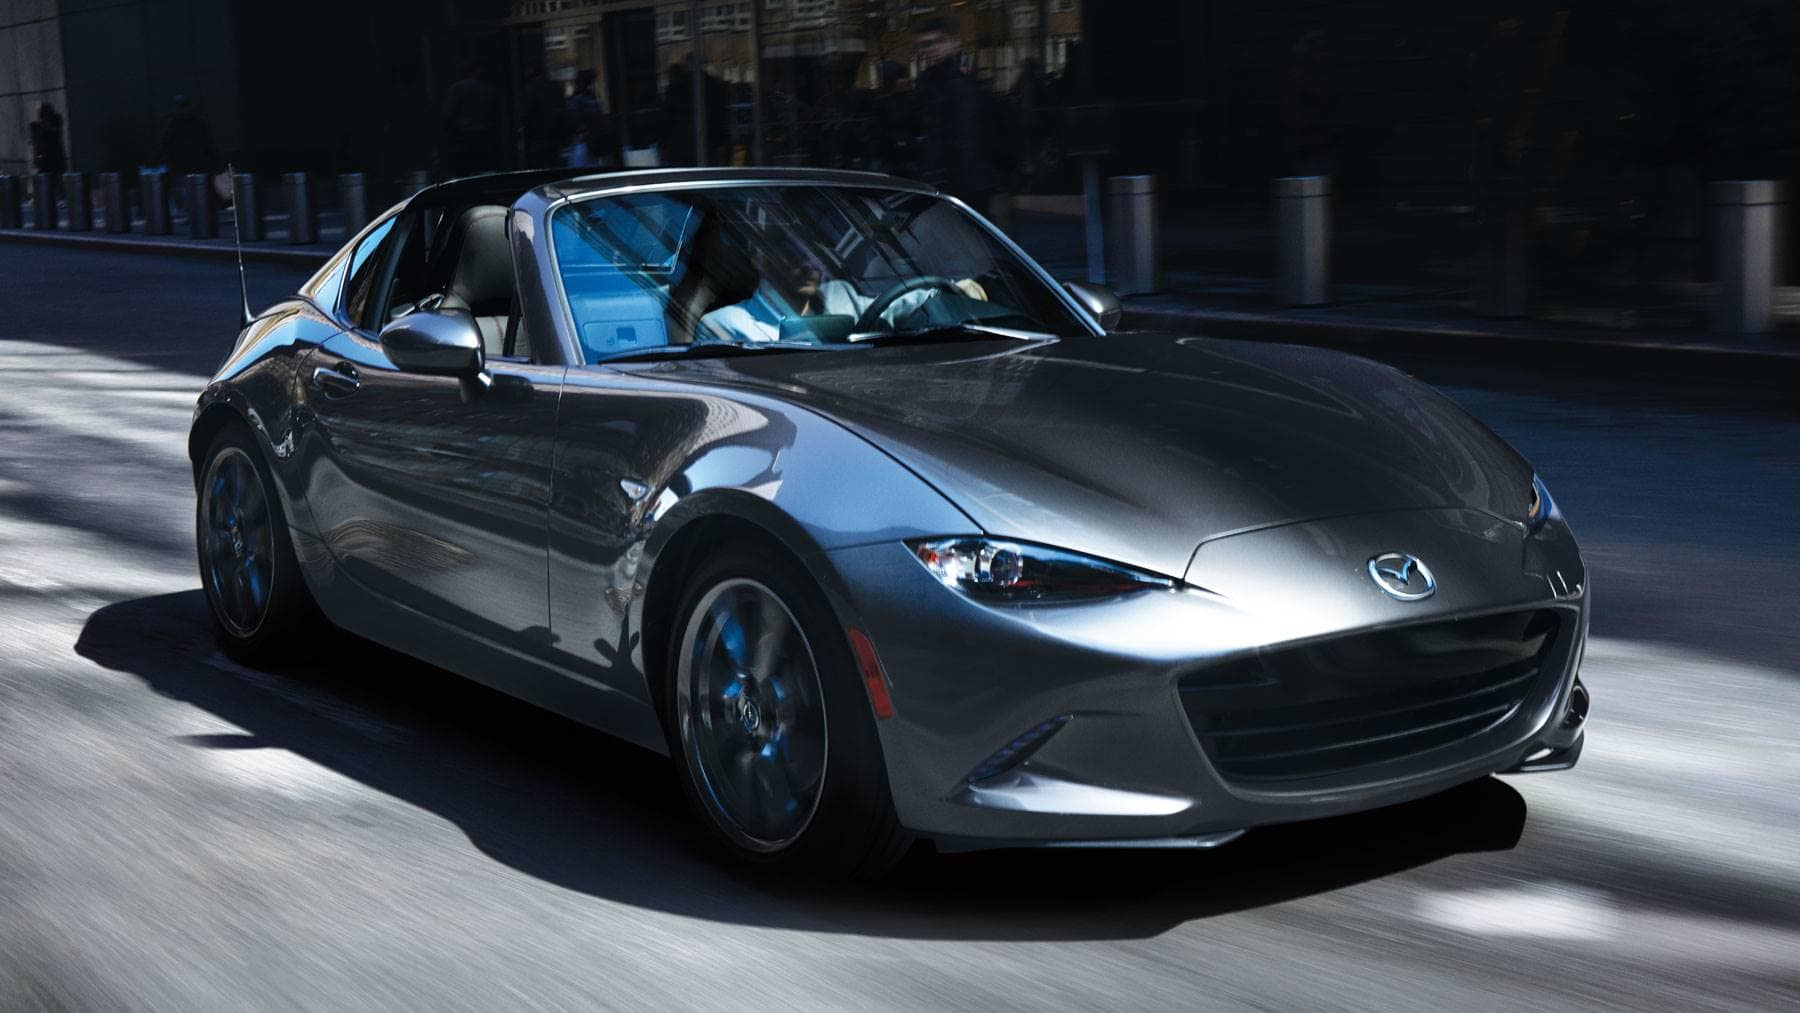 46 The Best 2019 Mazda Mx 5 Miata Engine